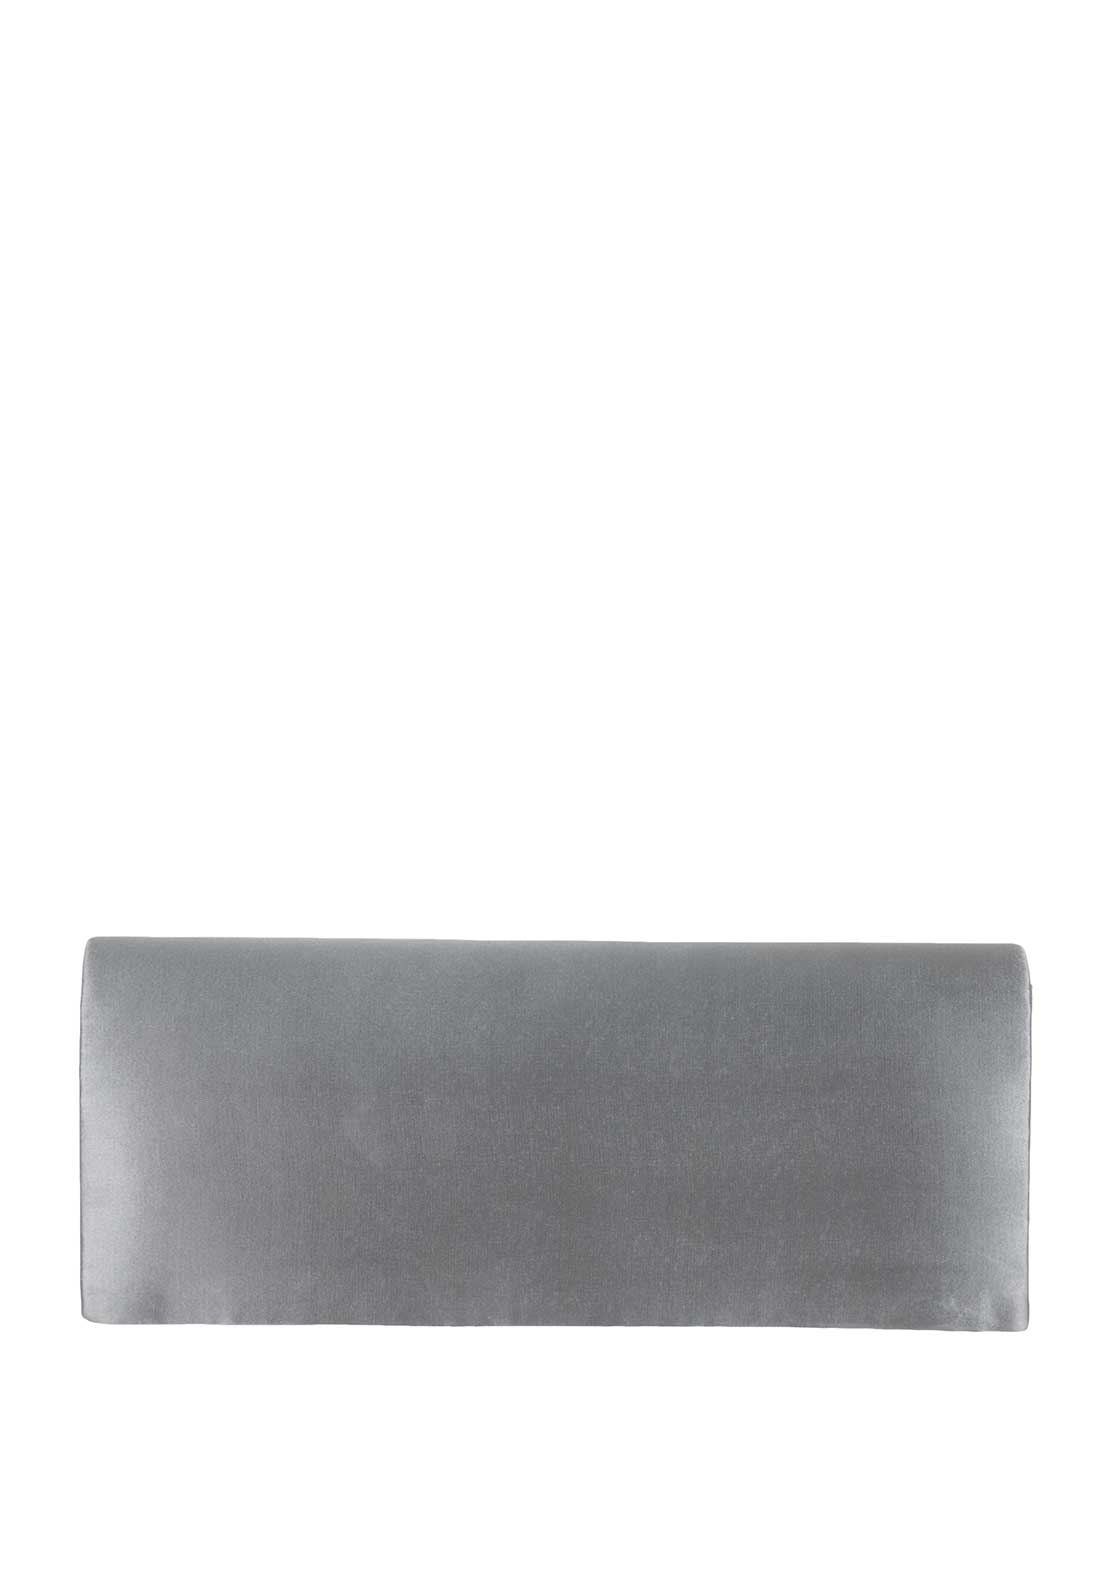 Lunar Isabella Satin Clutch Bag, Silver